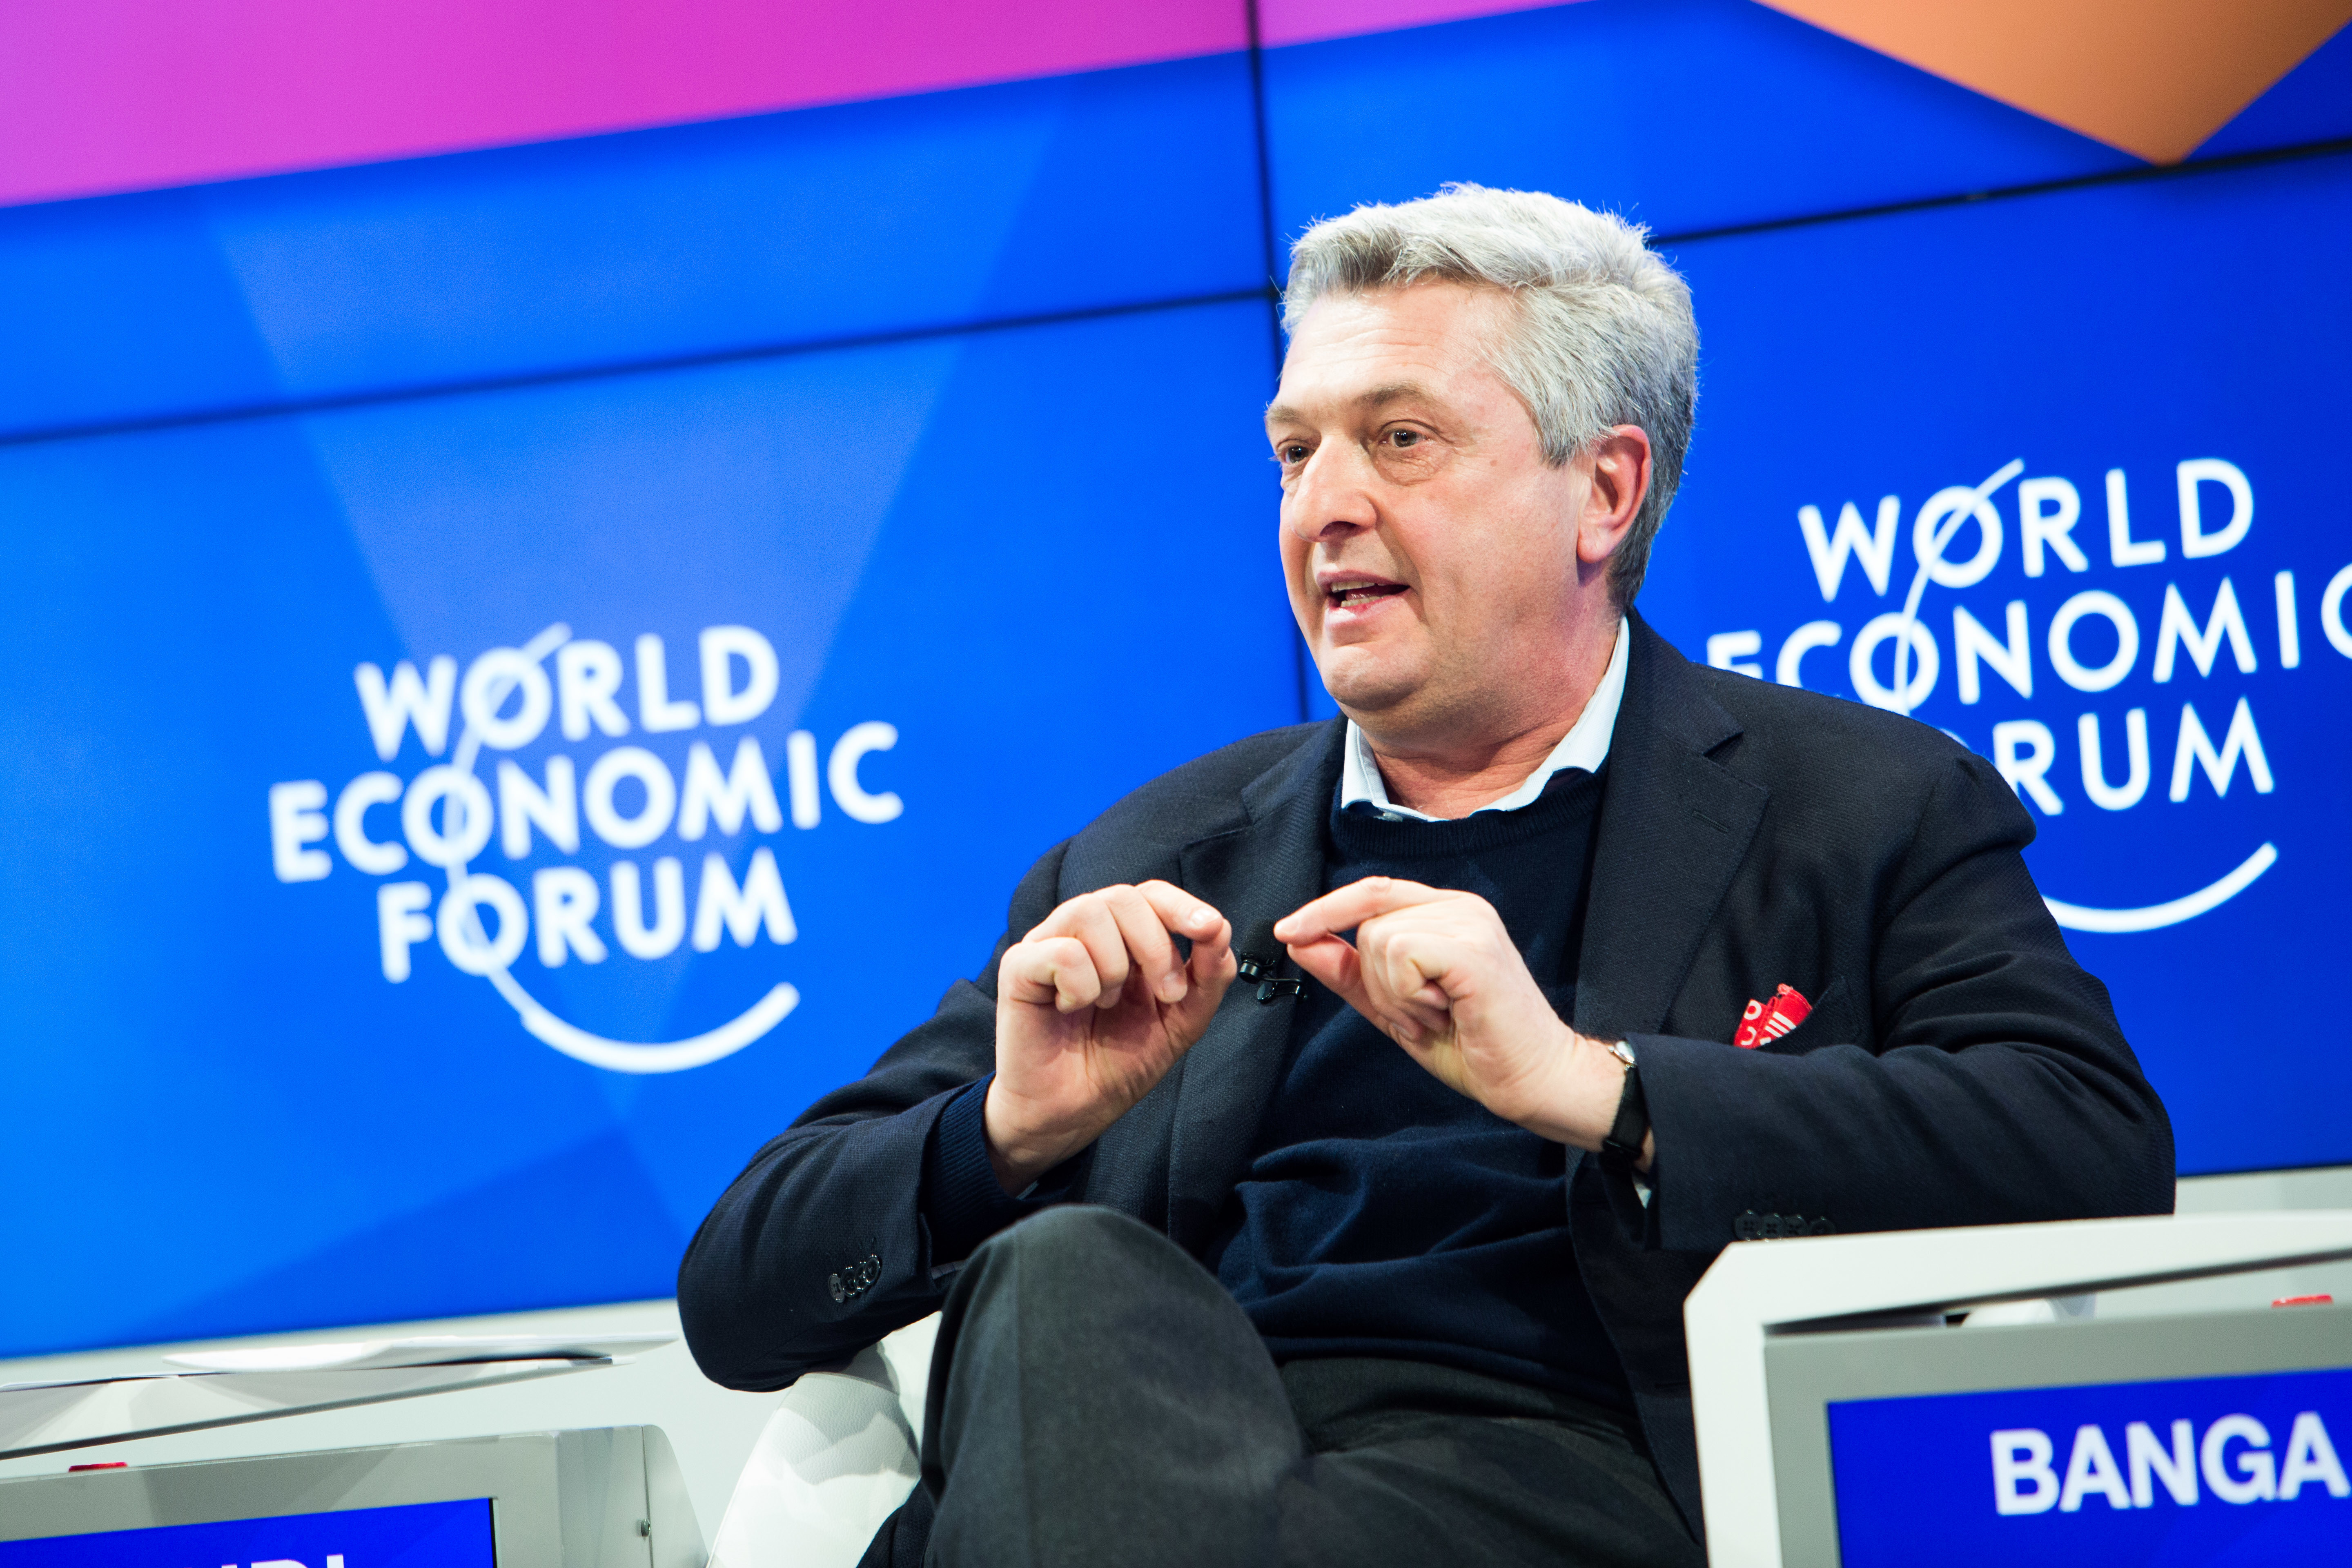 Filippo Grandi, United Nations High Commissioner for Refugees, Geneva speaking during the Session: Redesigning Humanitarian Action: Beyond the Crisis at the Annual Meeting 2017 of the World Economic Forum in Davos, January 18, 2017.Copyright by World Economic Forum / Sikarin Thanachaiary